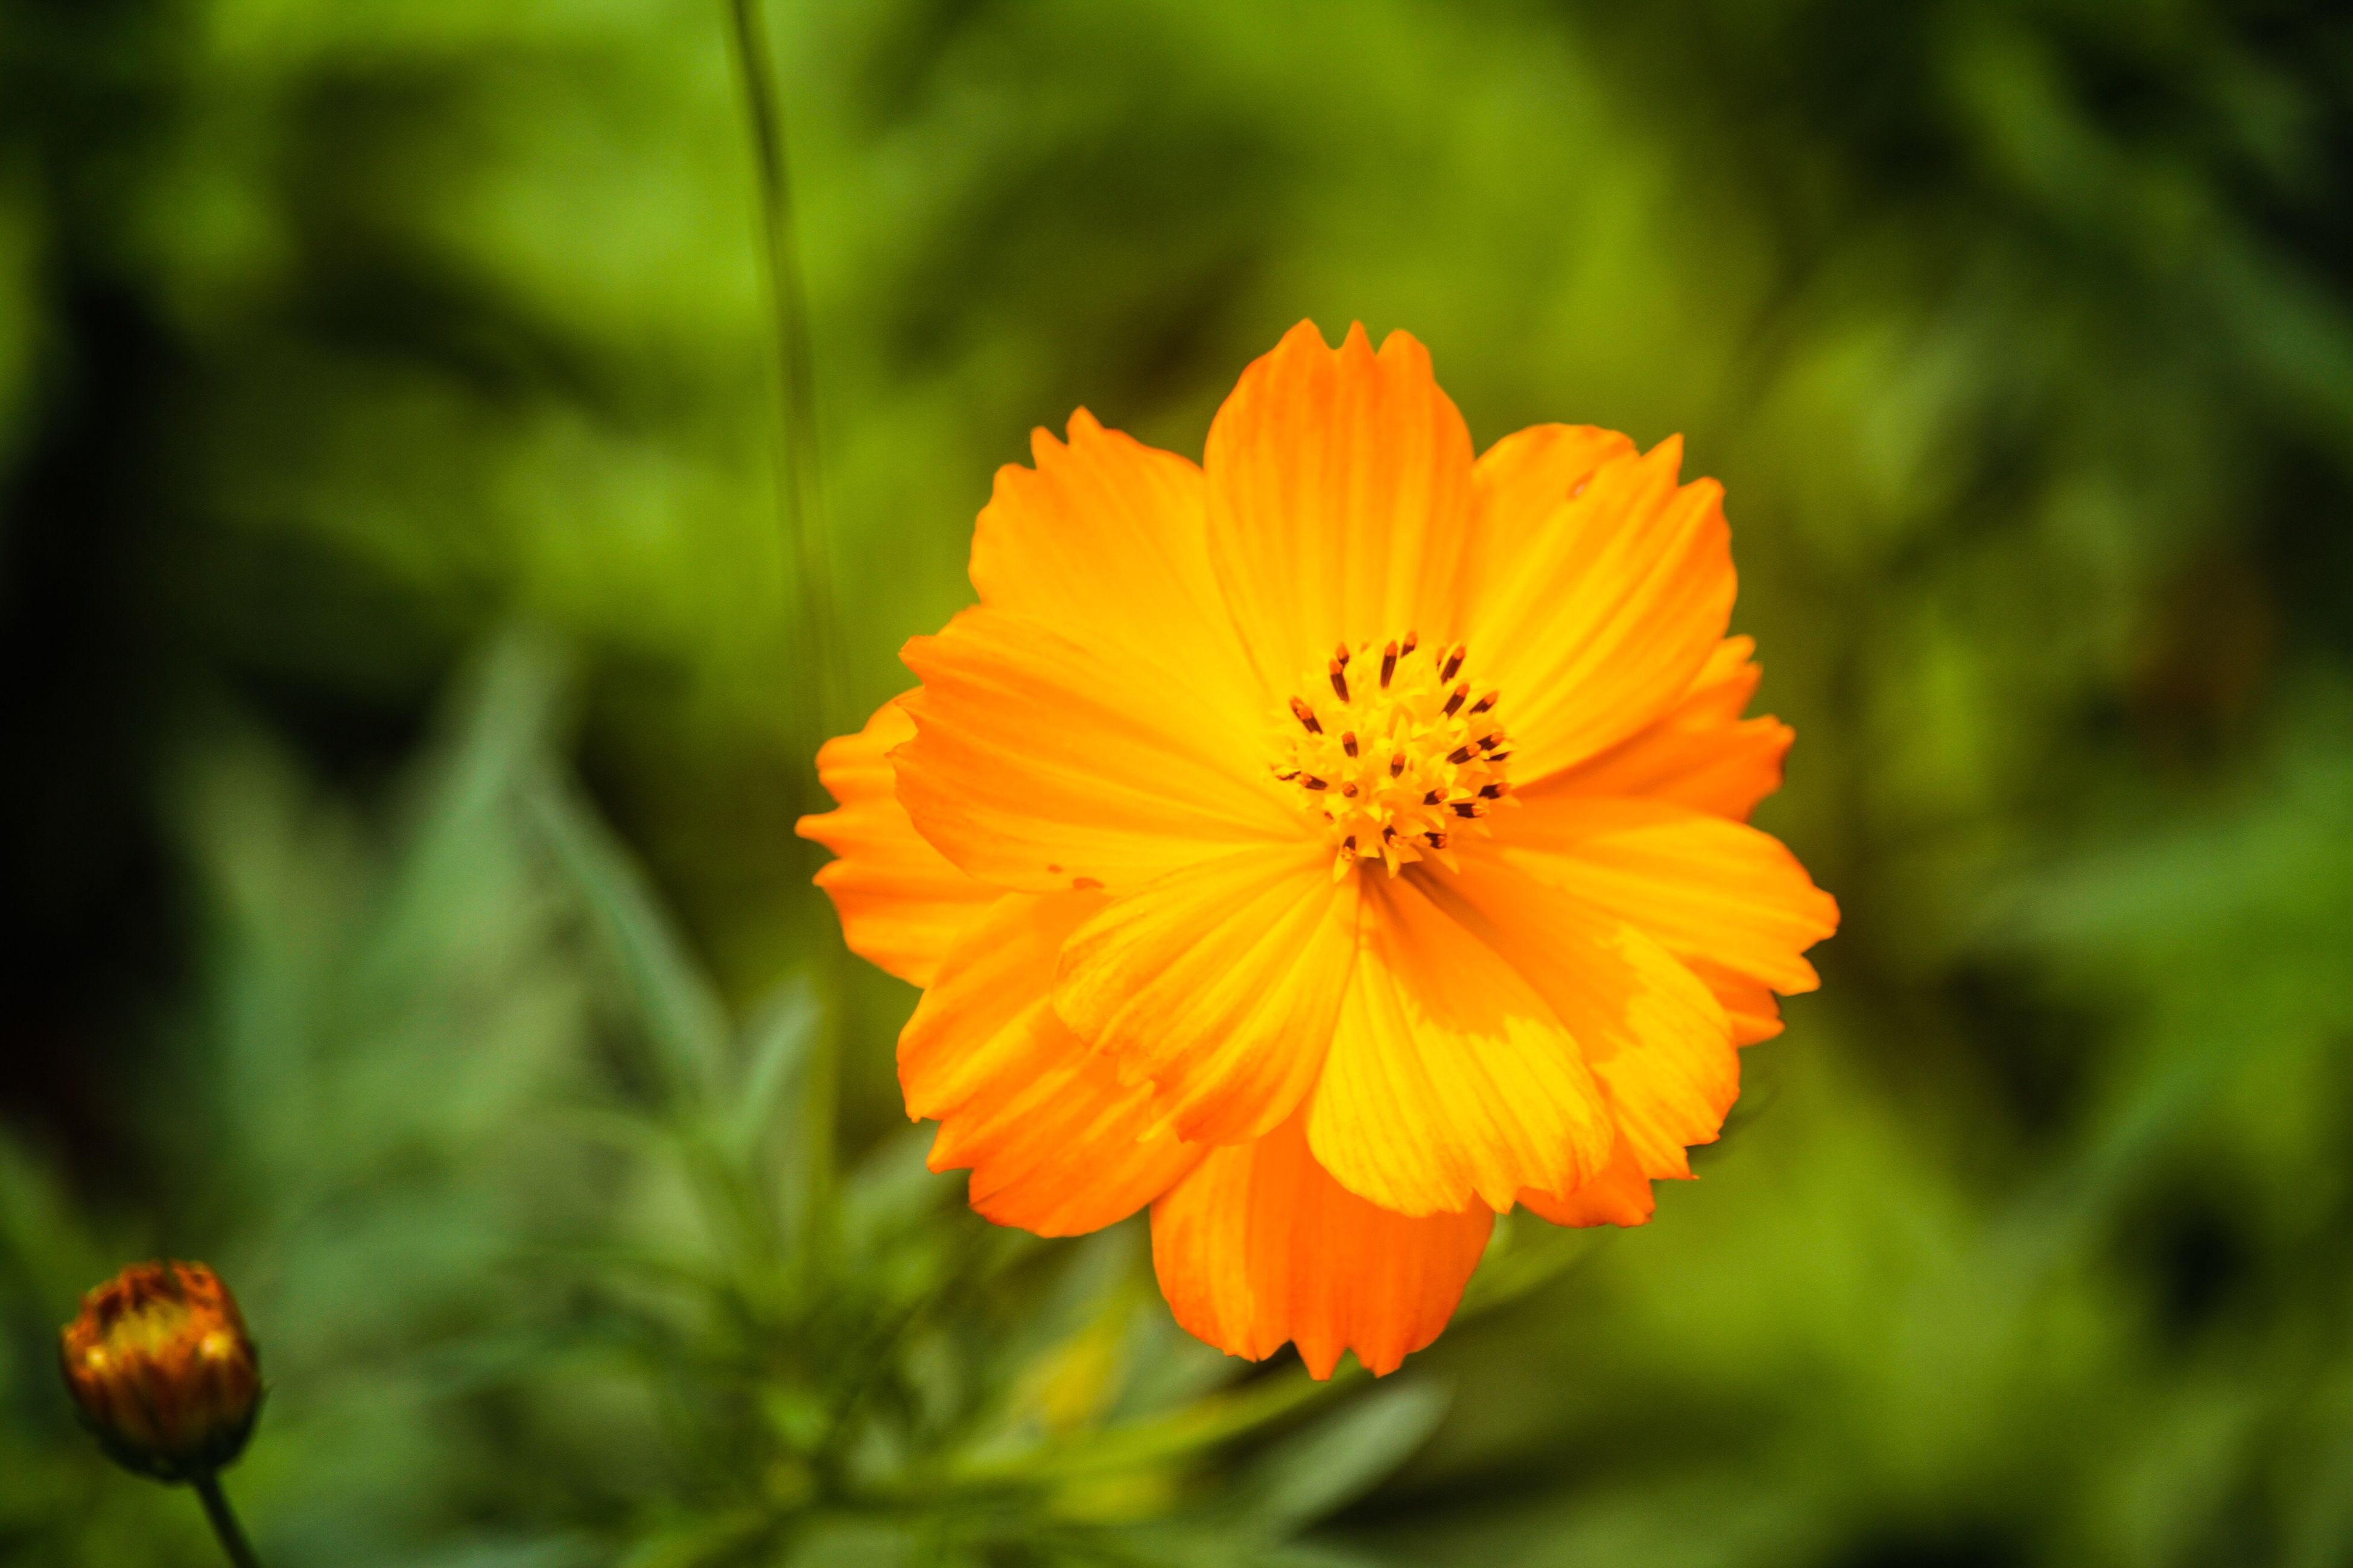 flower, petal, freshness, flower head, fragility, growth, beauty in nature, focus on foreground, close-up, yellow, pollen, blooming, orange color, nature, plant, in bloom, day, stamen, no people, outdoors, blossom, selective focus, botany, green color, tranquility